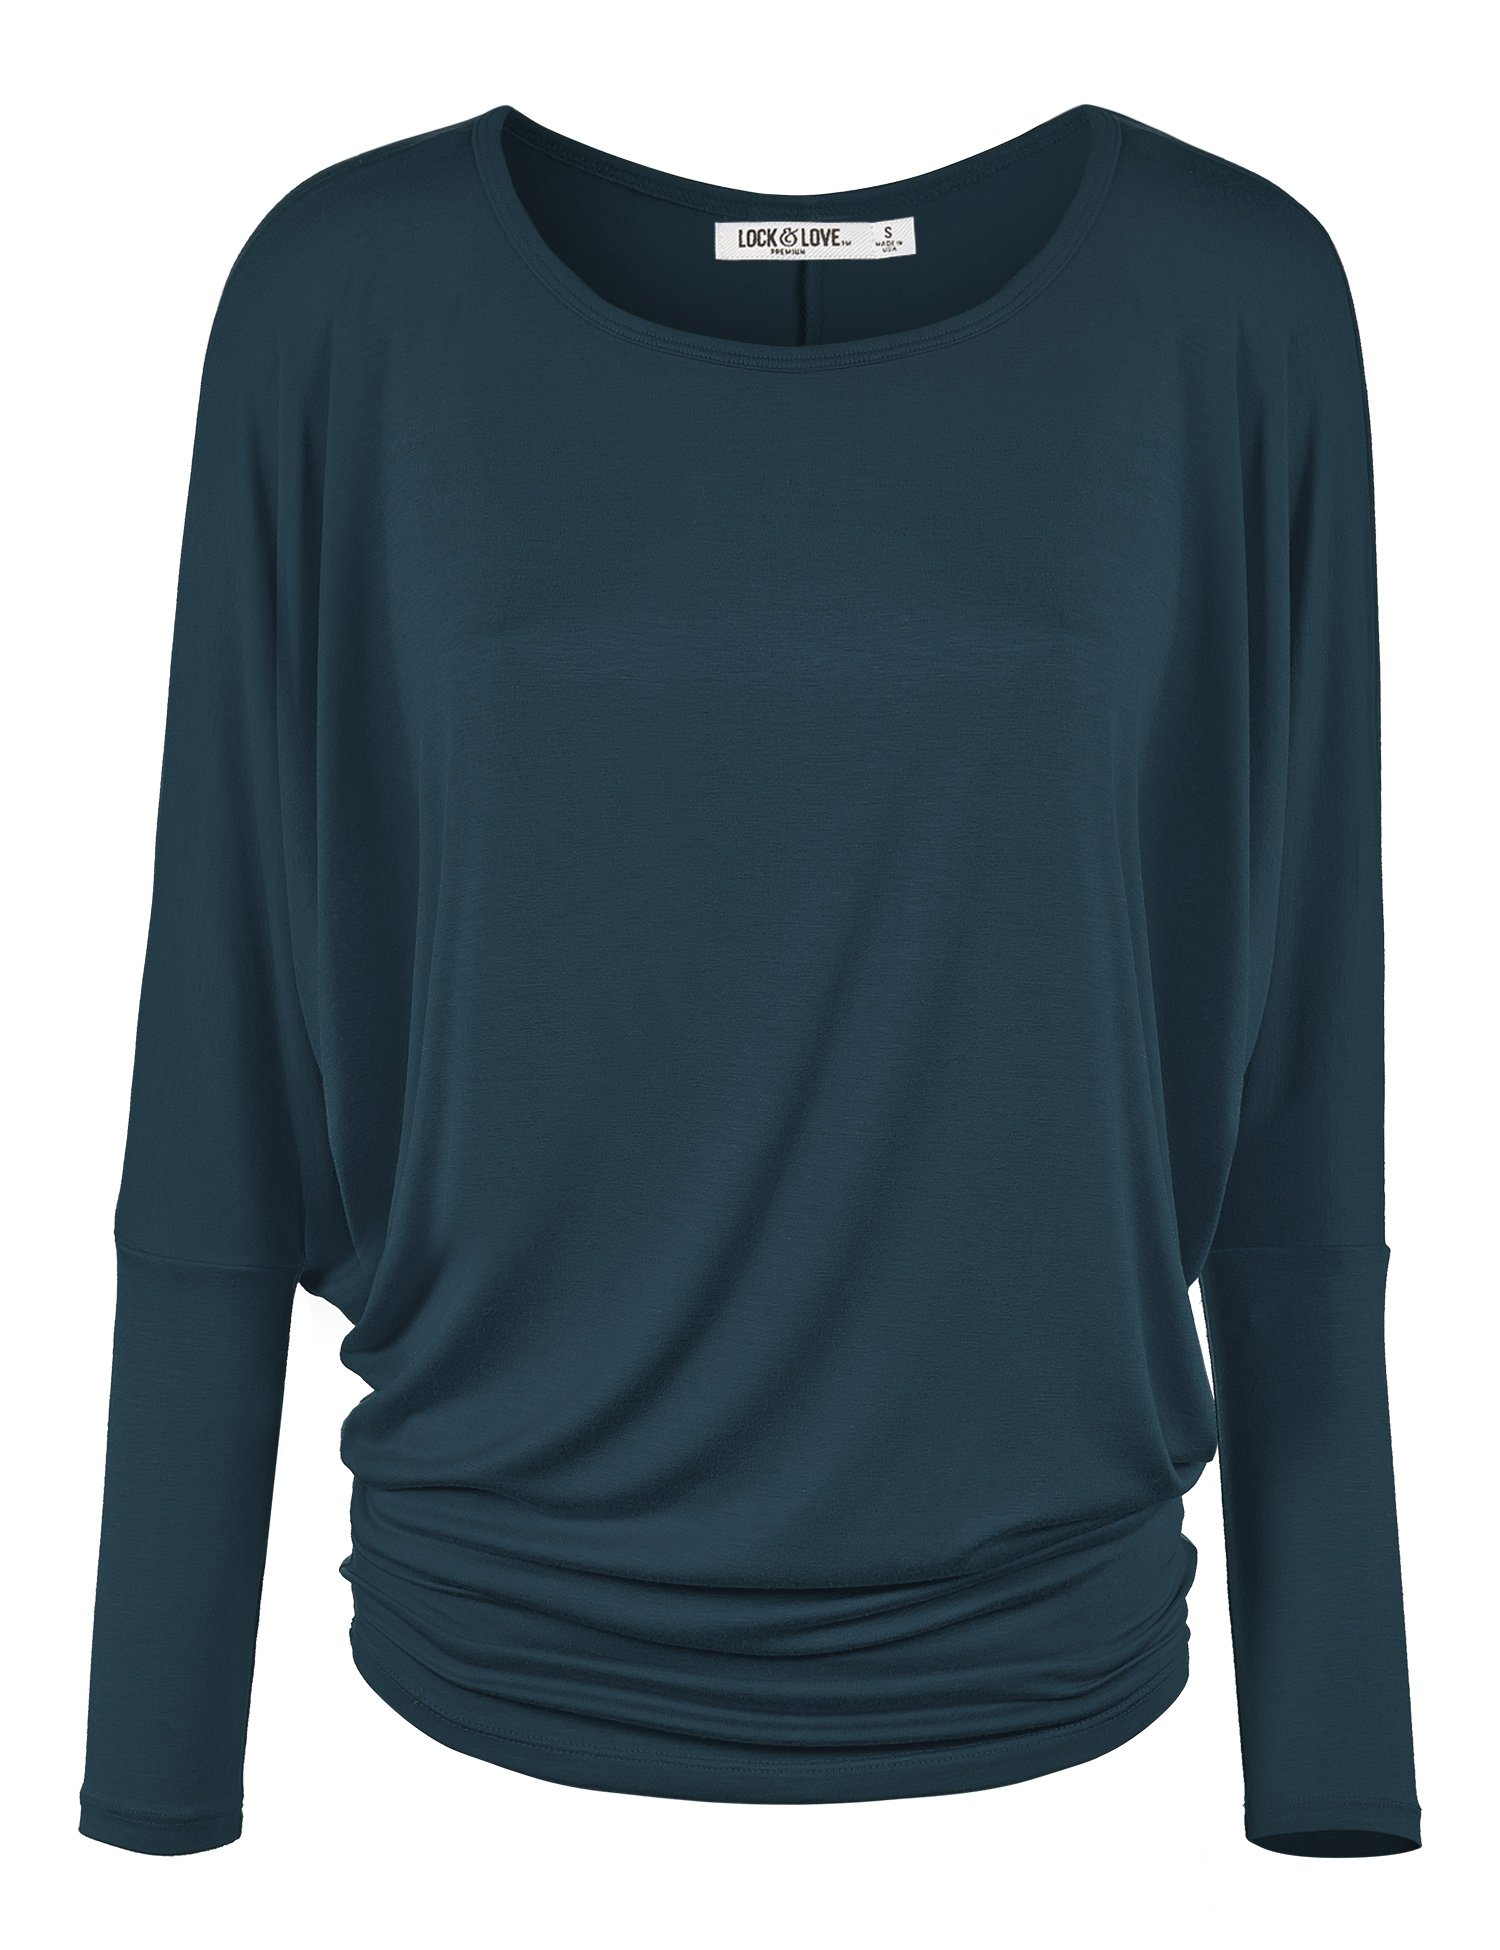 Lock and Love WT826 Womens Batwing Long Sleeve Top L Teal